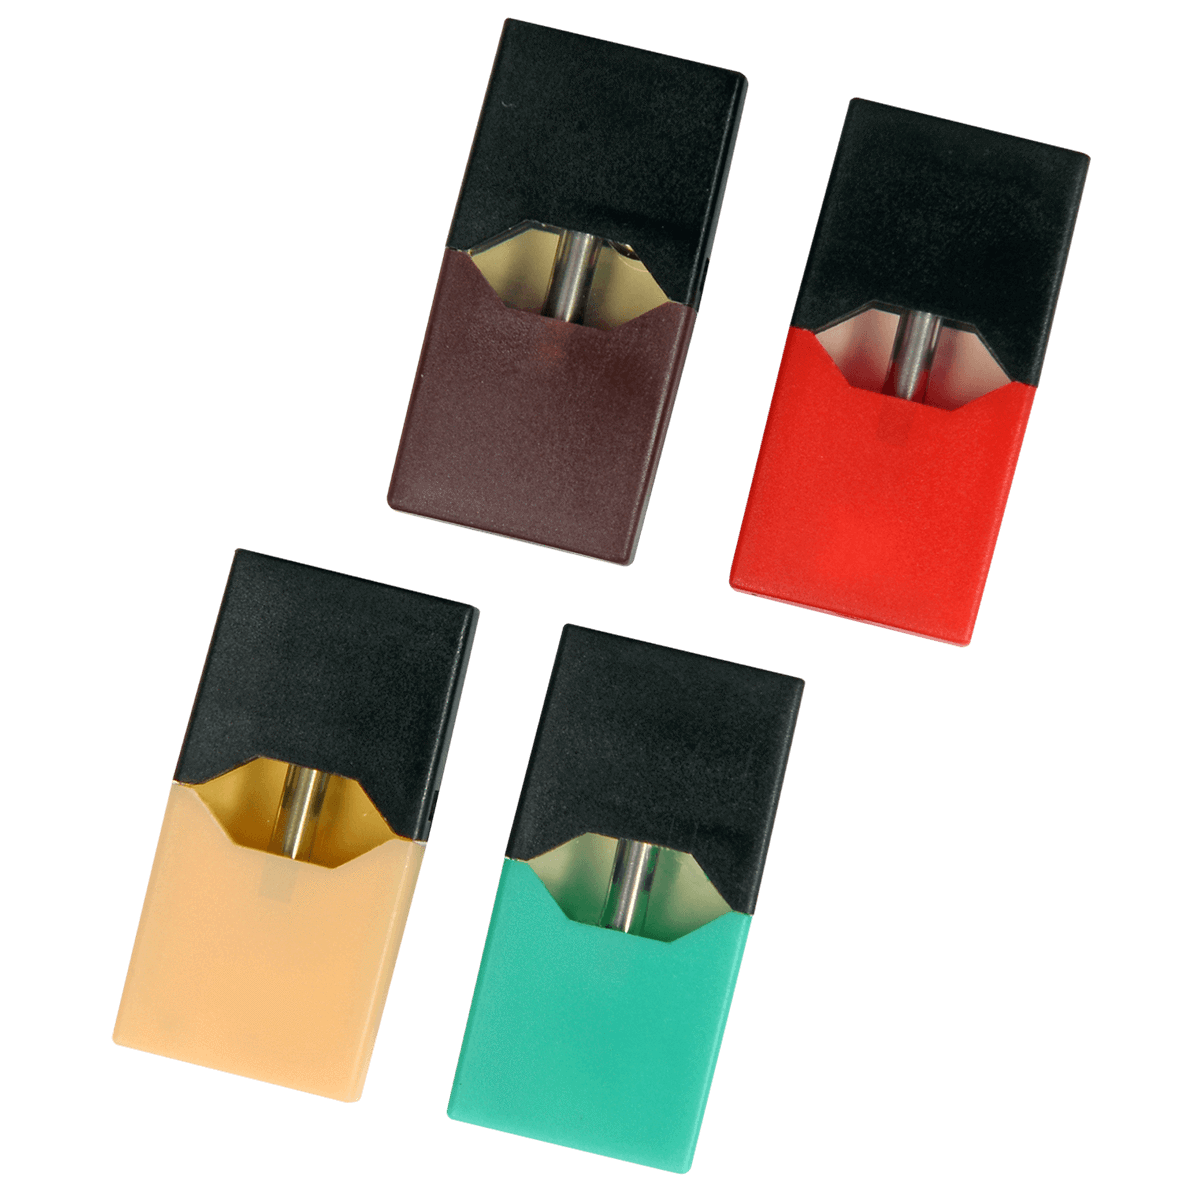 JUUL Pods - Pack of 4 Pods | vape | Vape, Packing